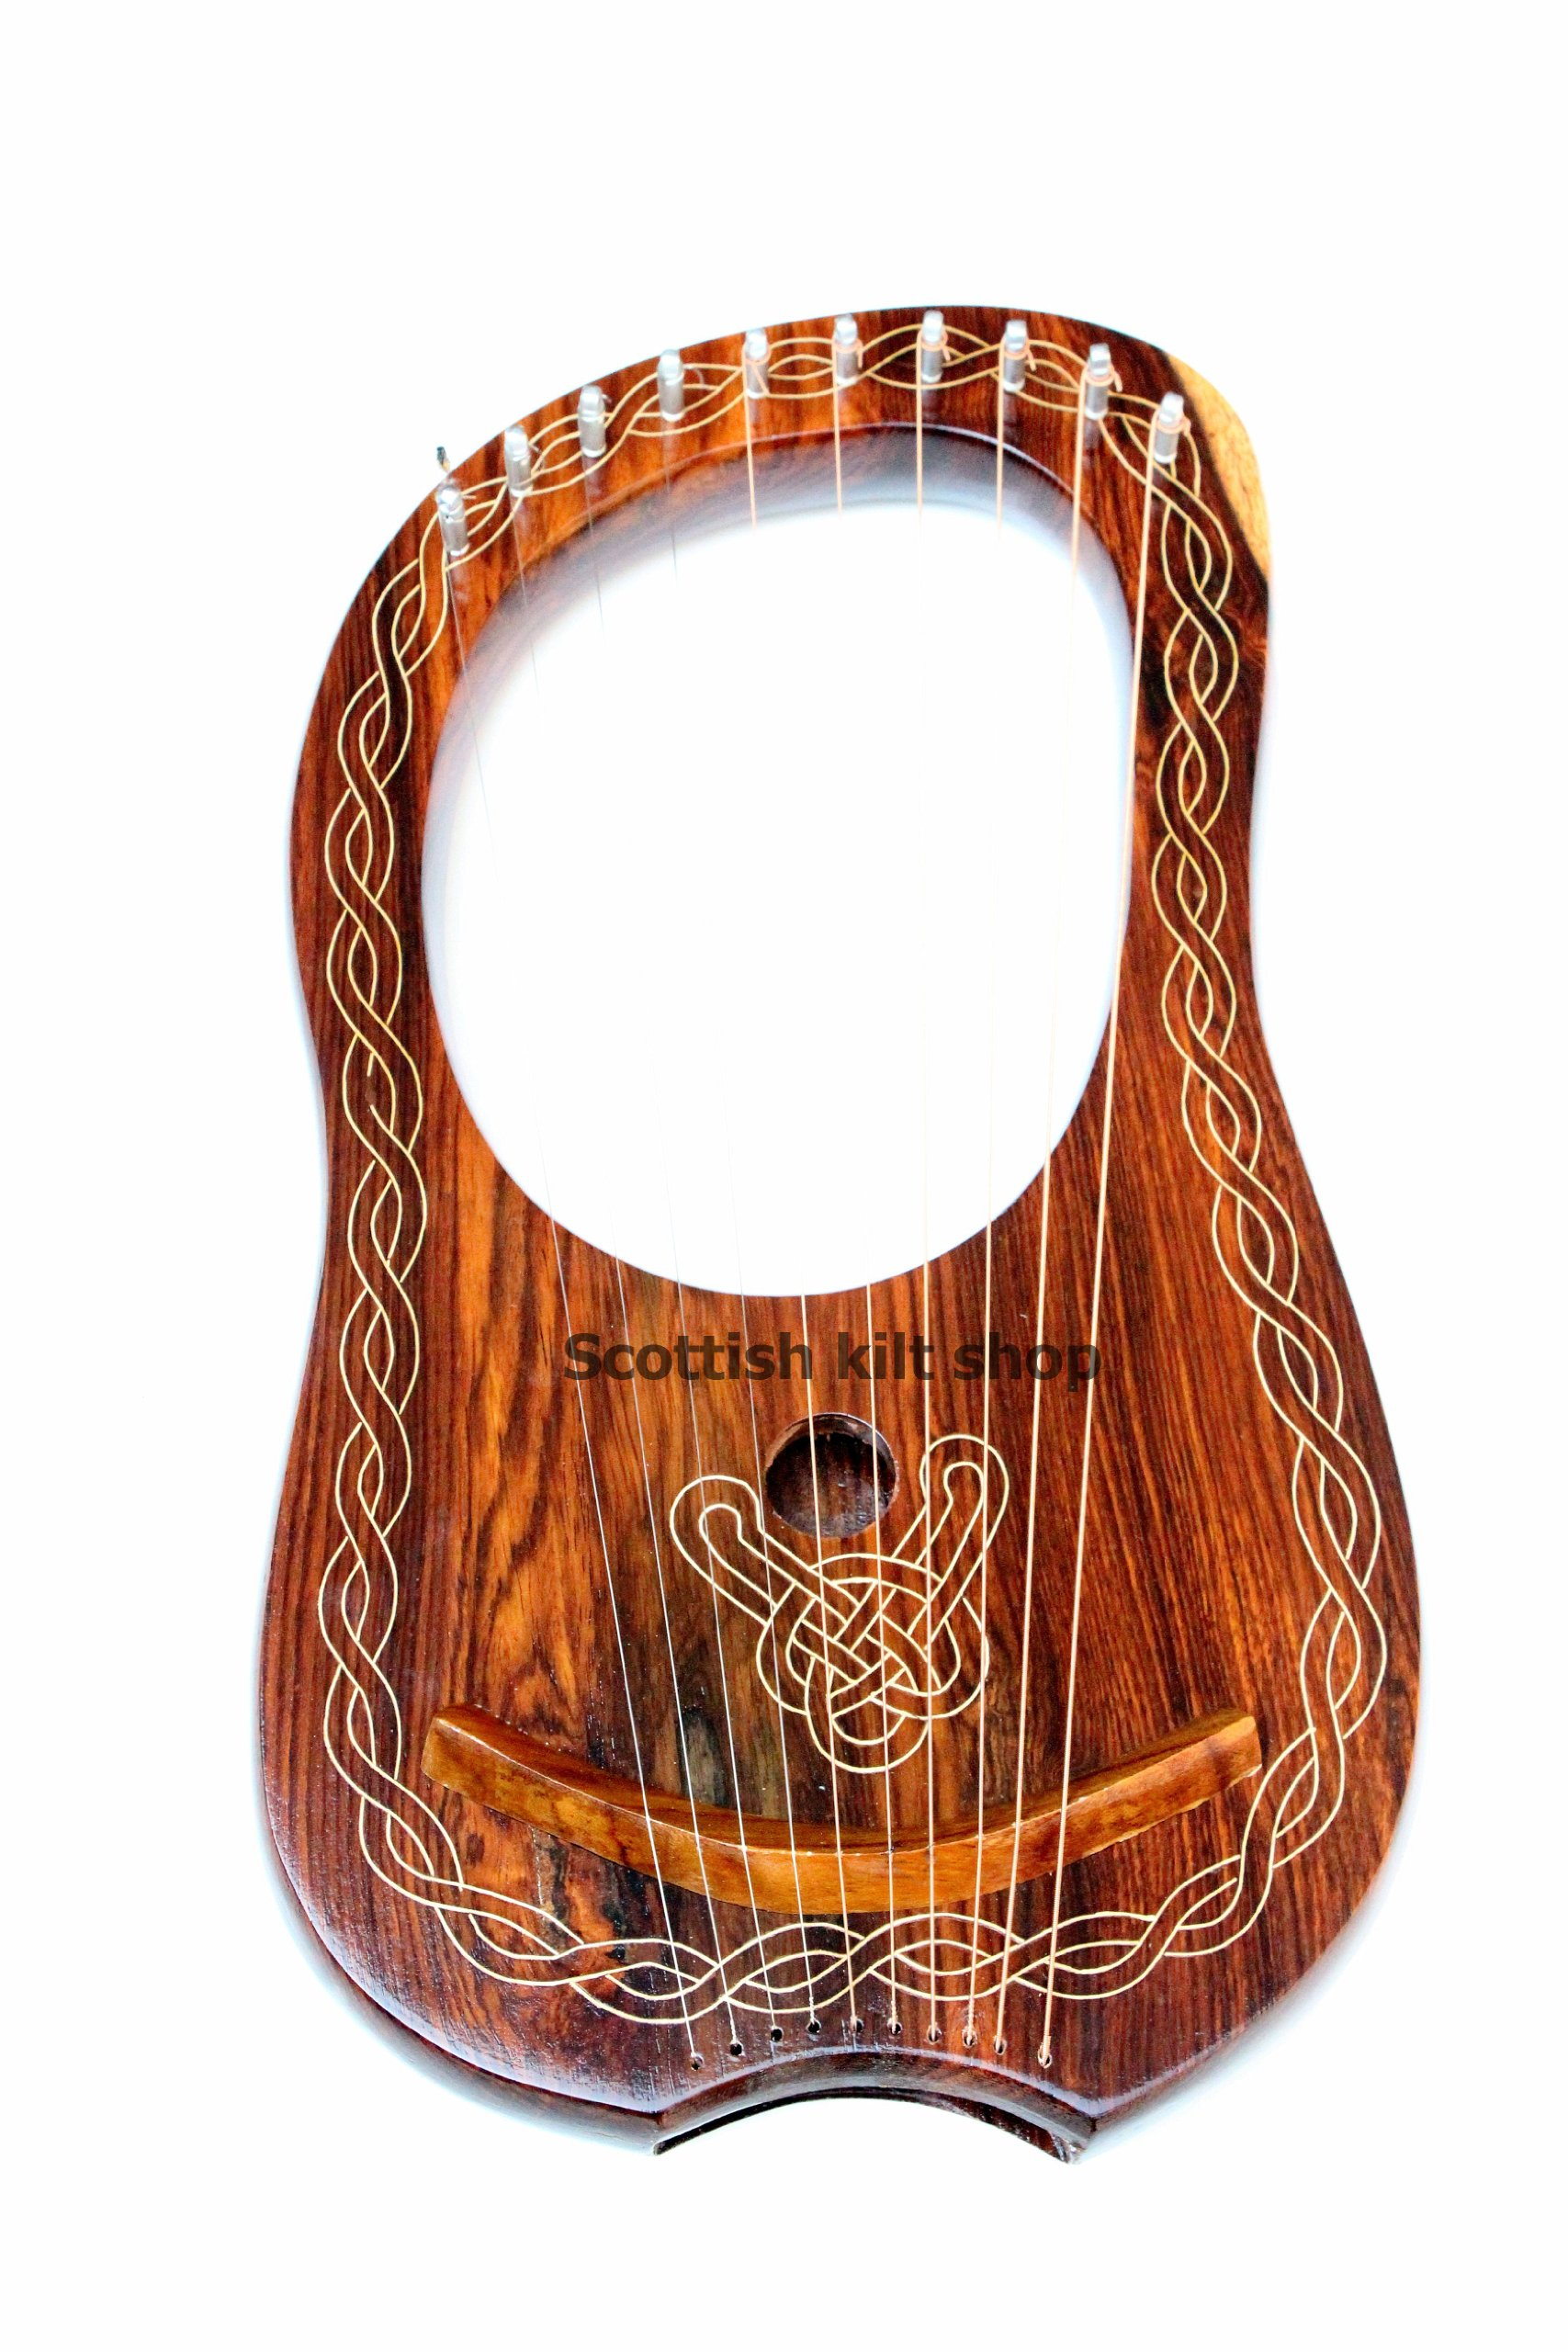 Lyre Harp, 10 String Handmade Engraved Rosewood by Bfigure